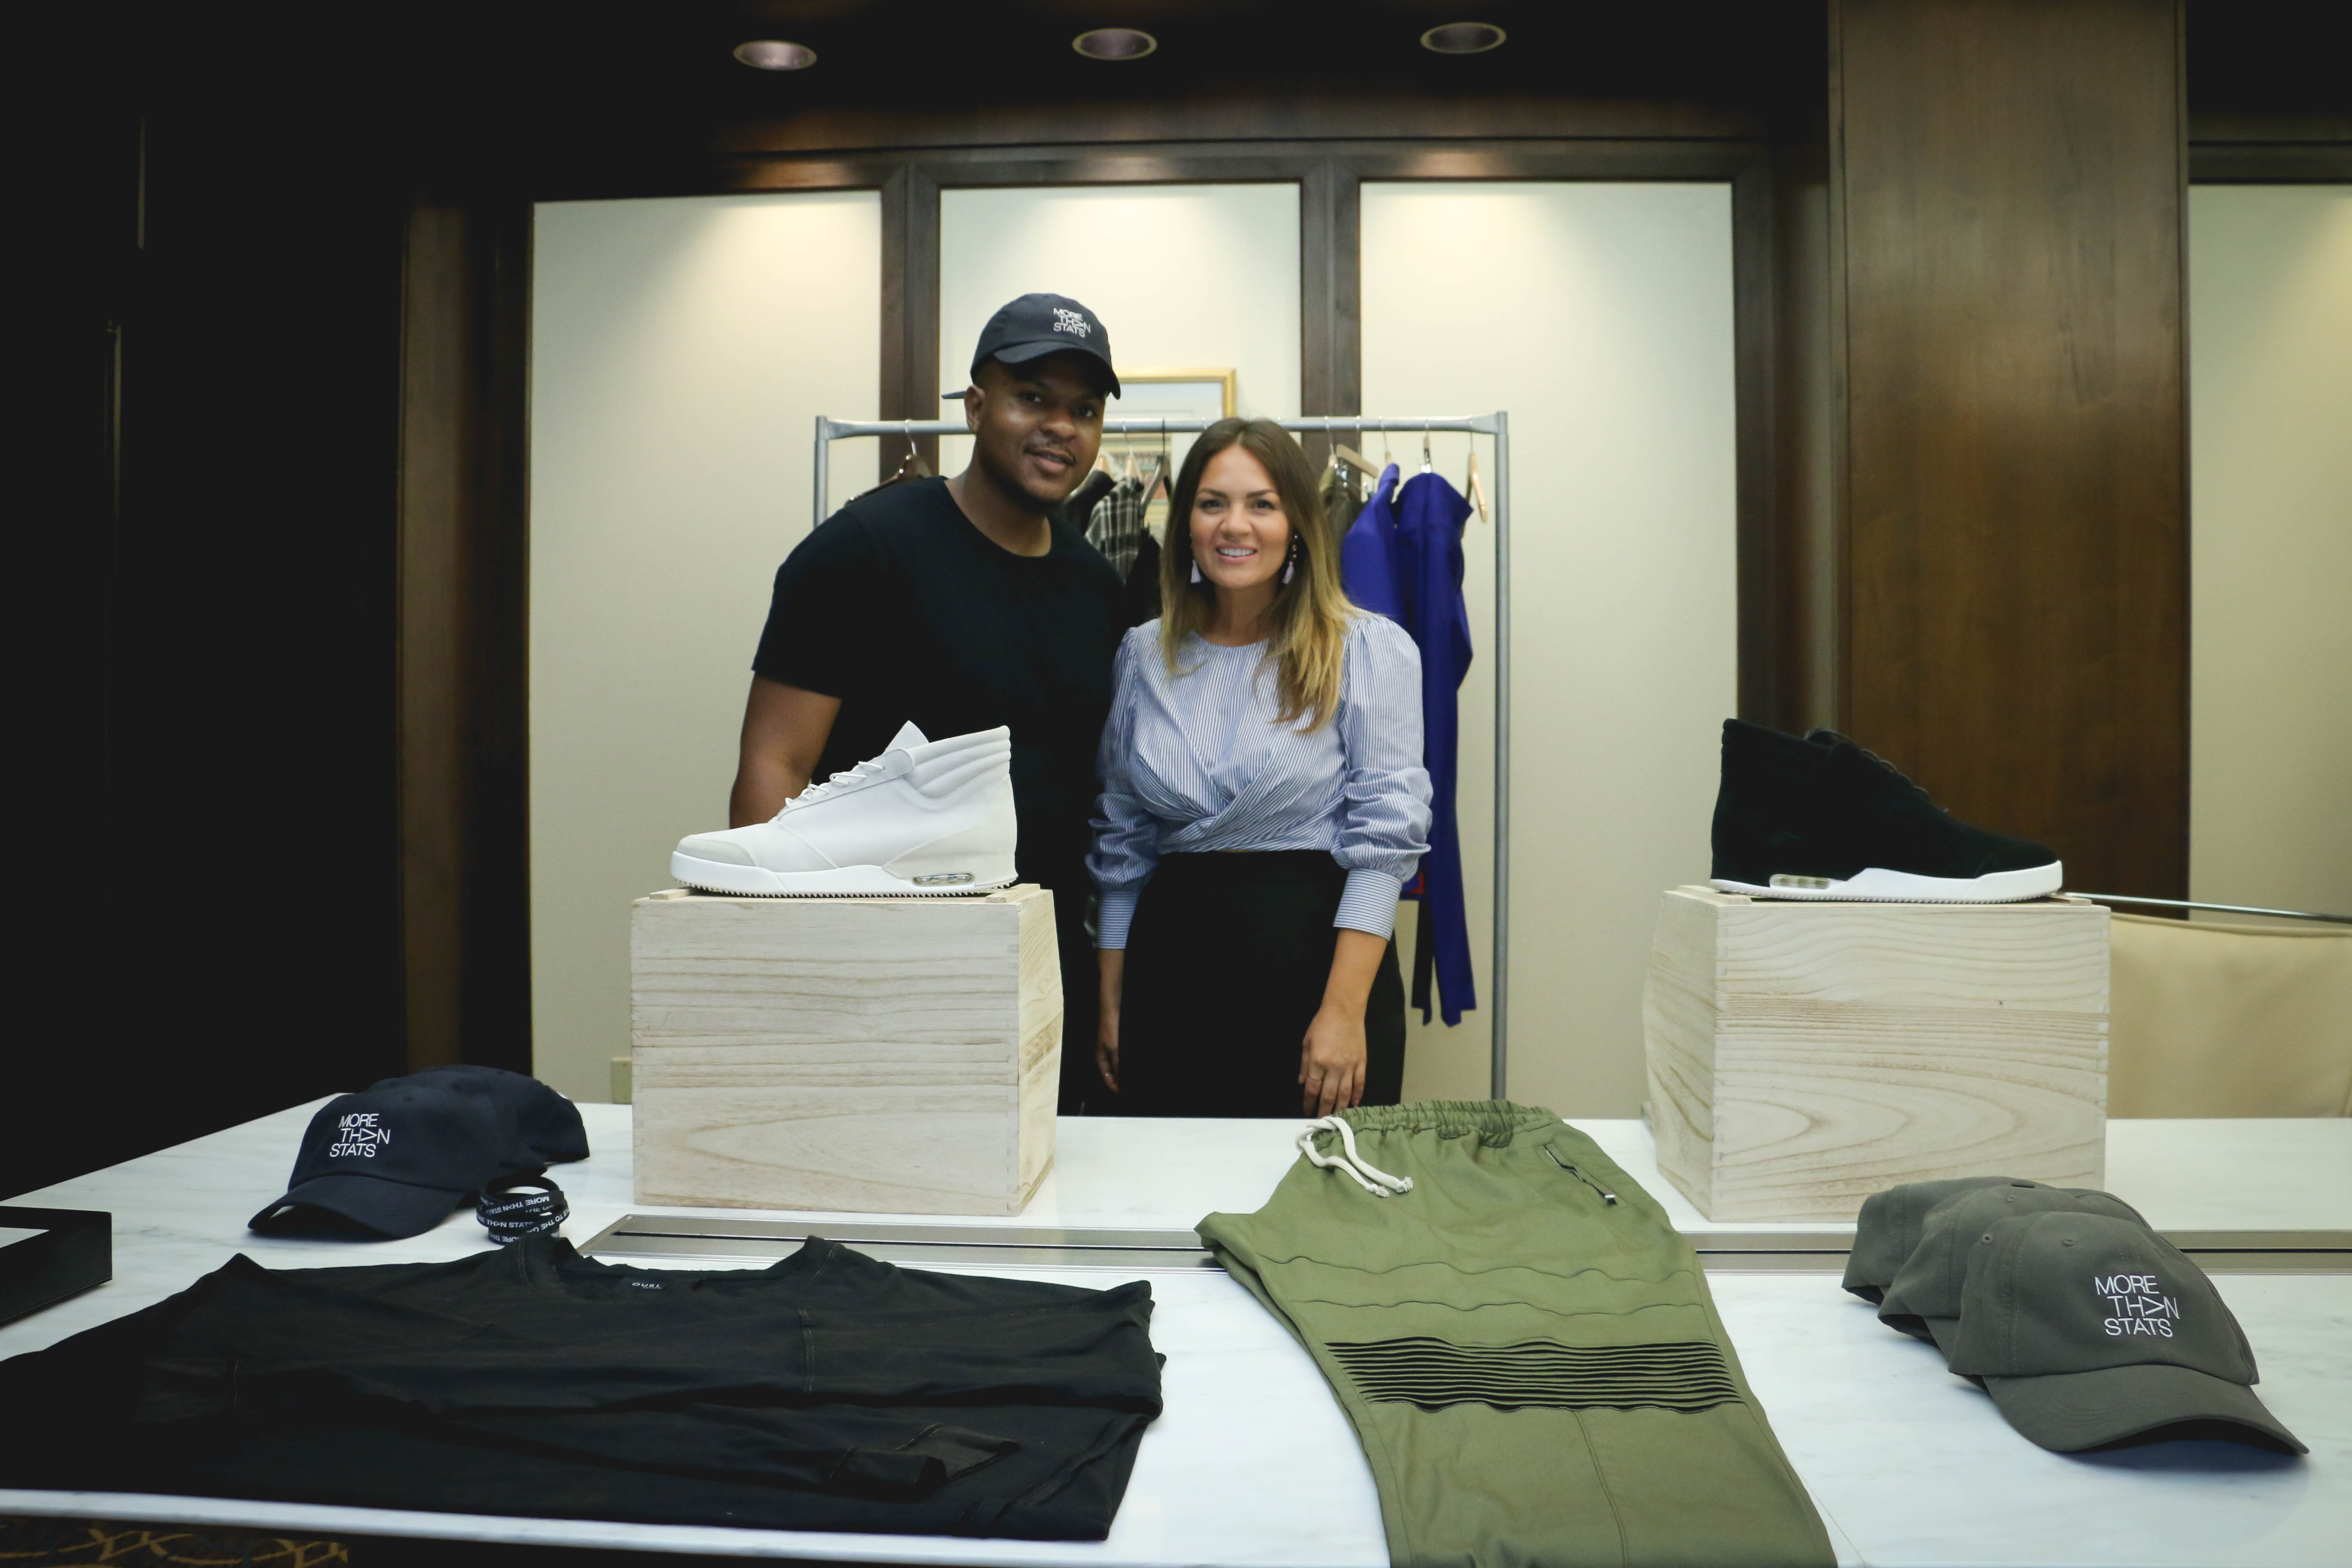 New York Giants Training camp Menswear Pop-up curated by Men's Stylist Rocio Doyle of Lucia Rocio